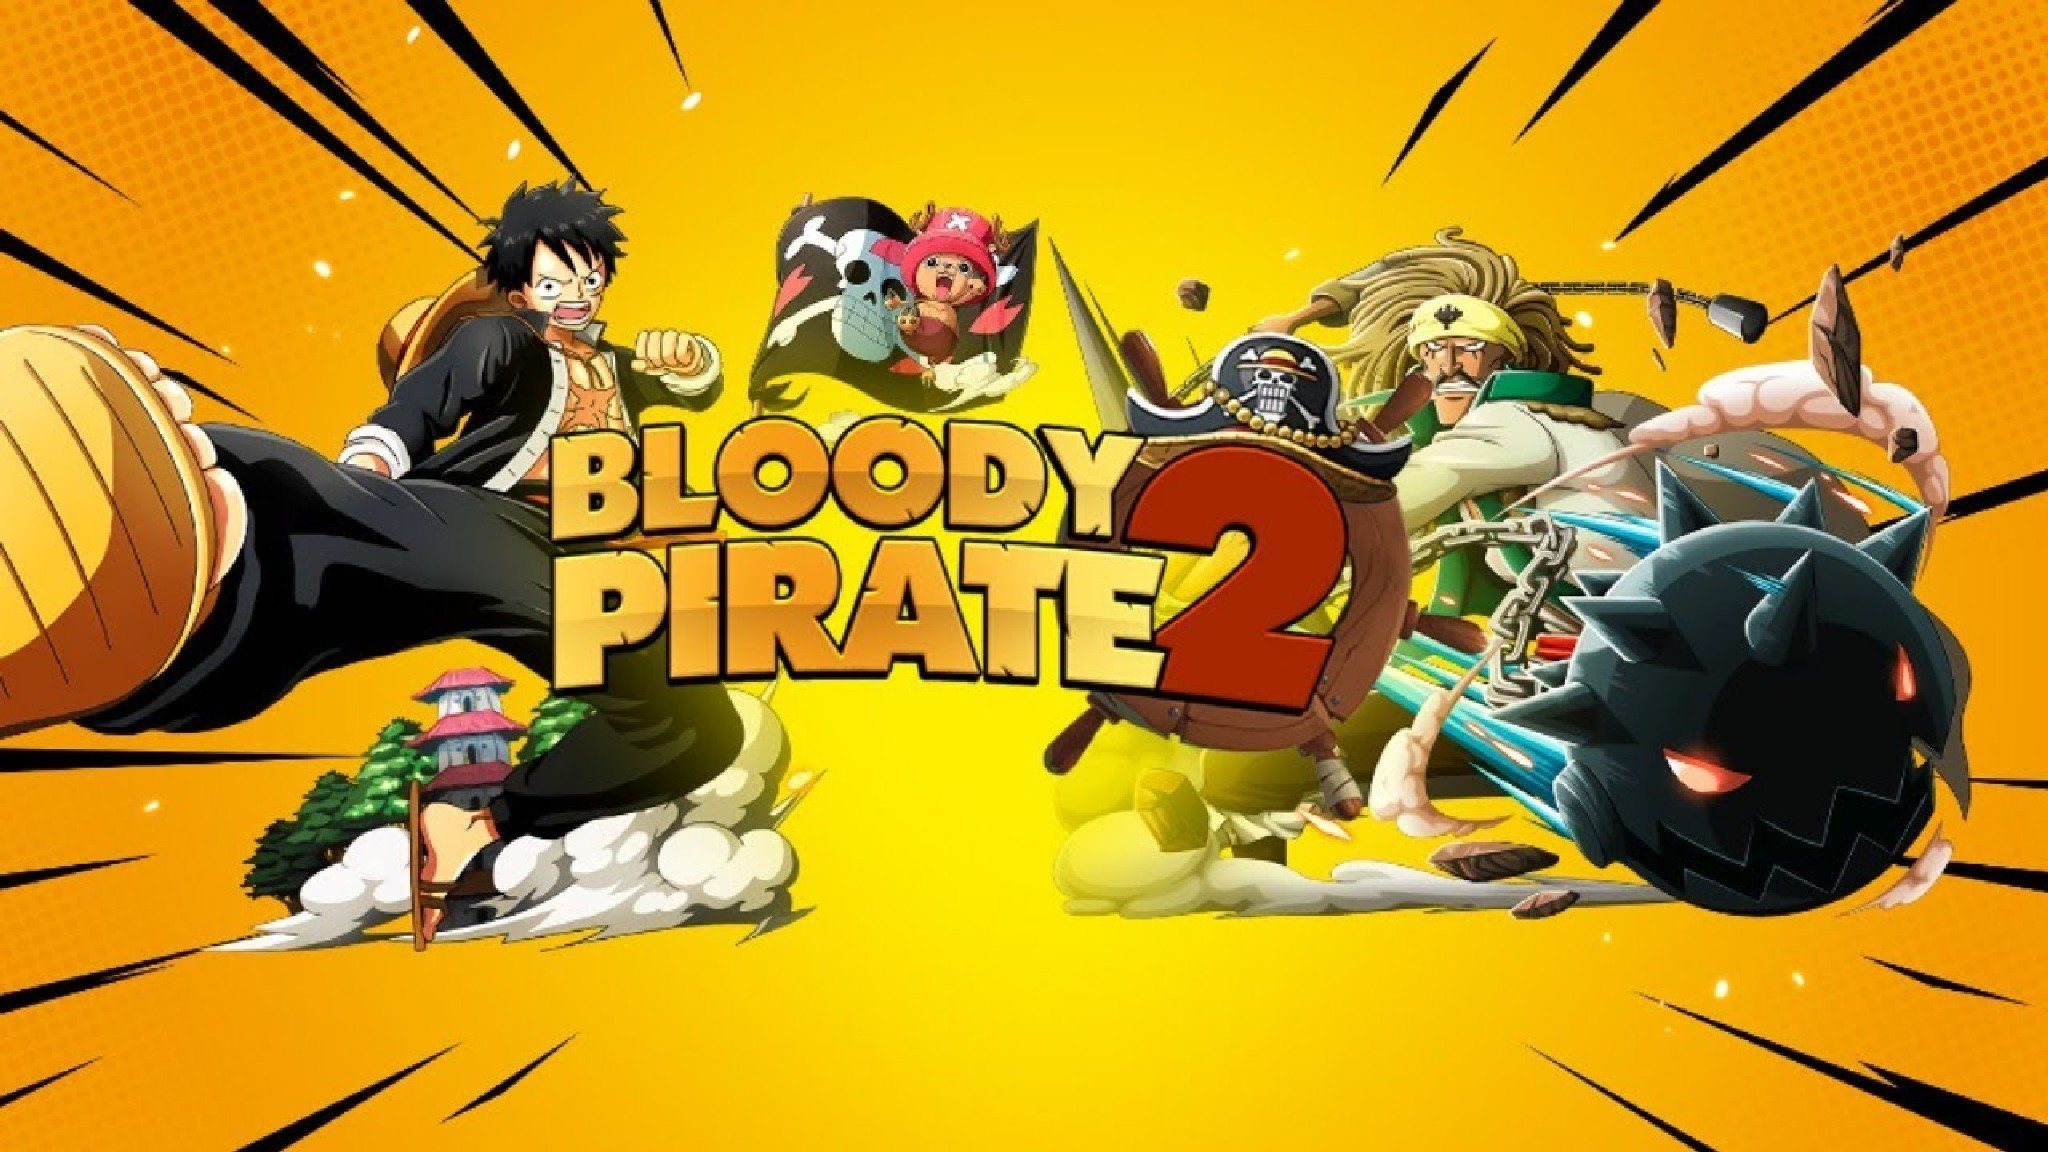 Играть Bloody Pirate 2 онлайн